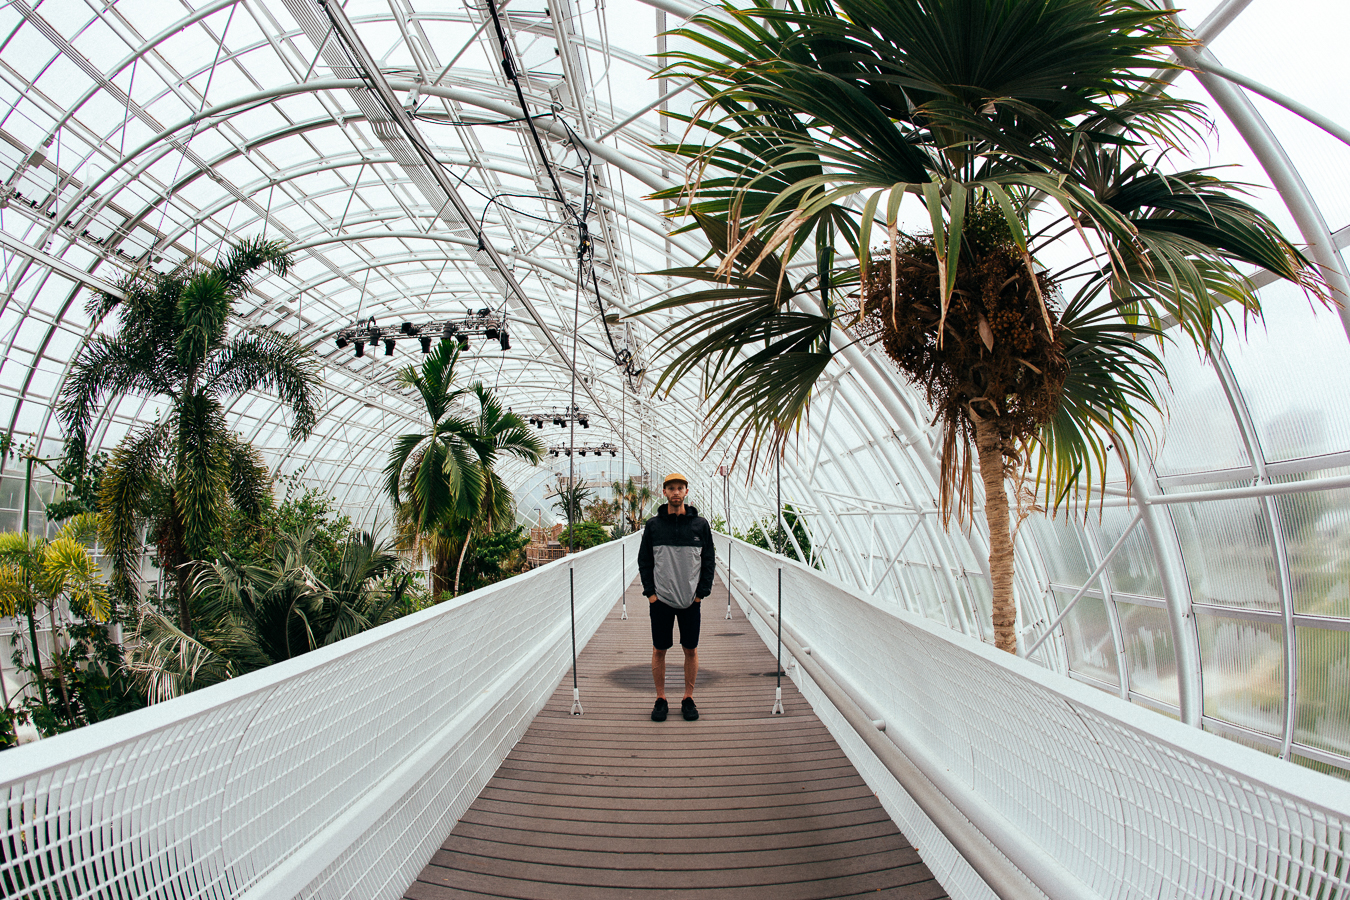 I showed up in Oklahoma City in the middle of a heavy rainstorm. Luckily I  found this cool conservatory to take shelter.